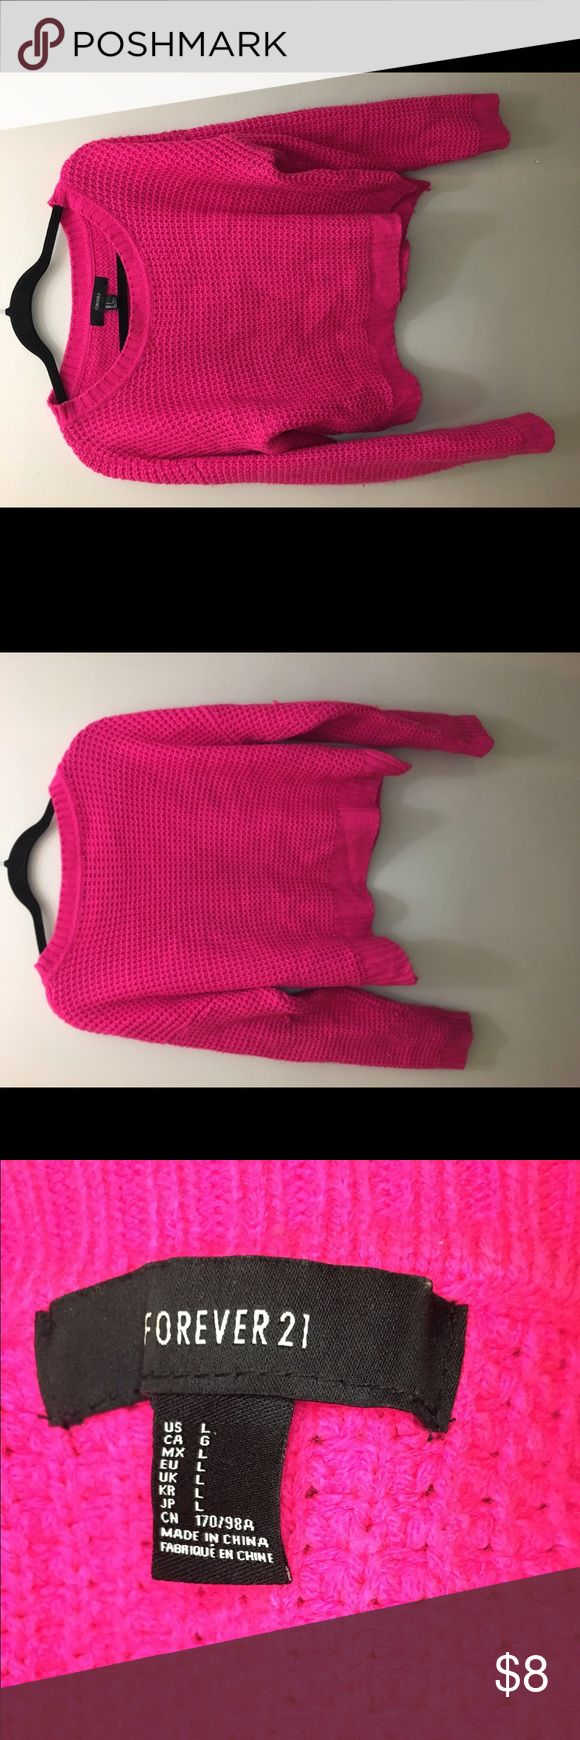 Hot pink sweater A hot pink knit sweater Sweaters Crew & Scoop Necks